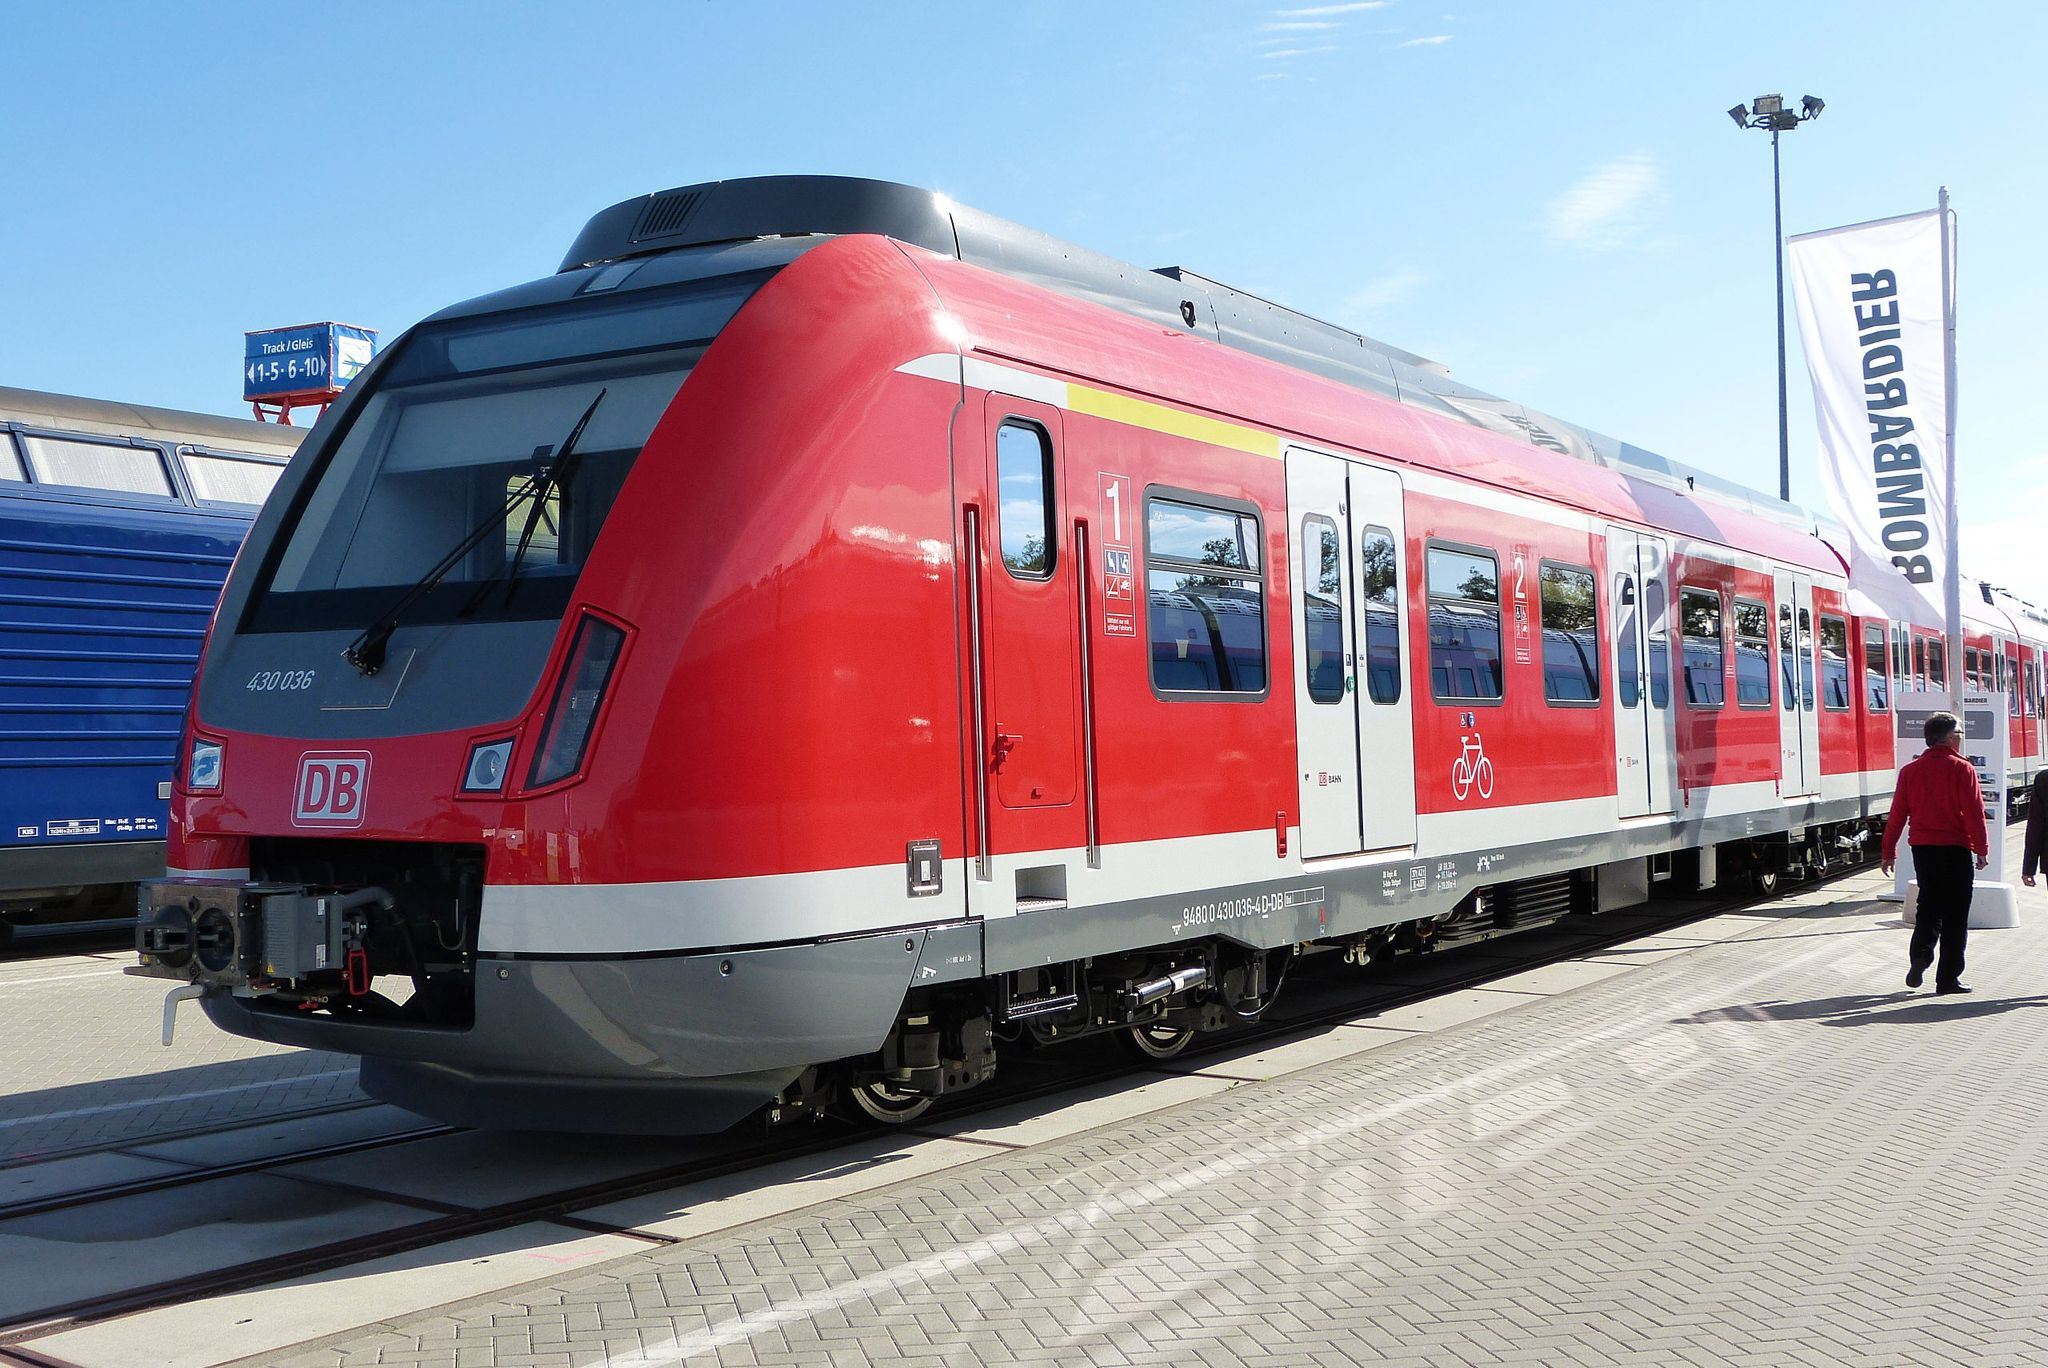 Class 430 Emu Is An Electric Railcar For S Bahn Commuter Networks